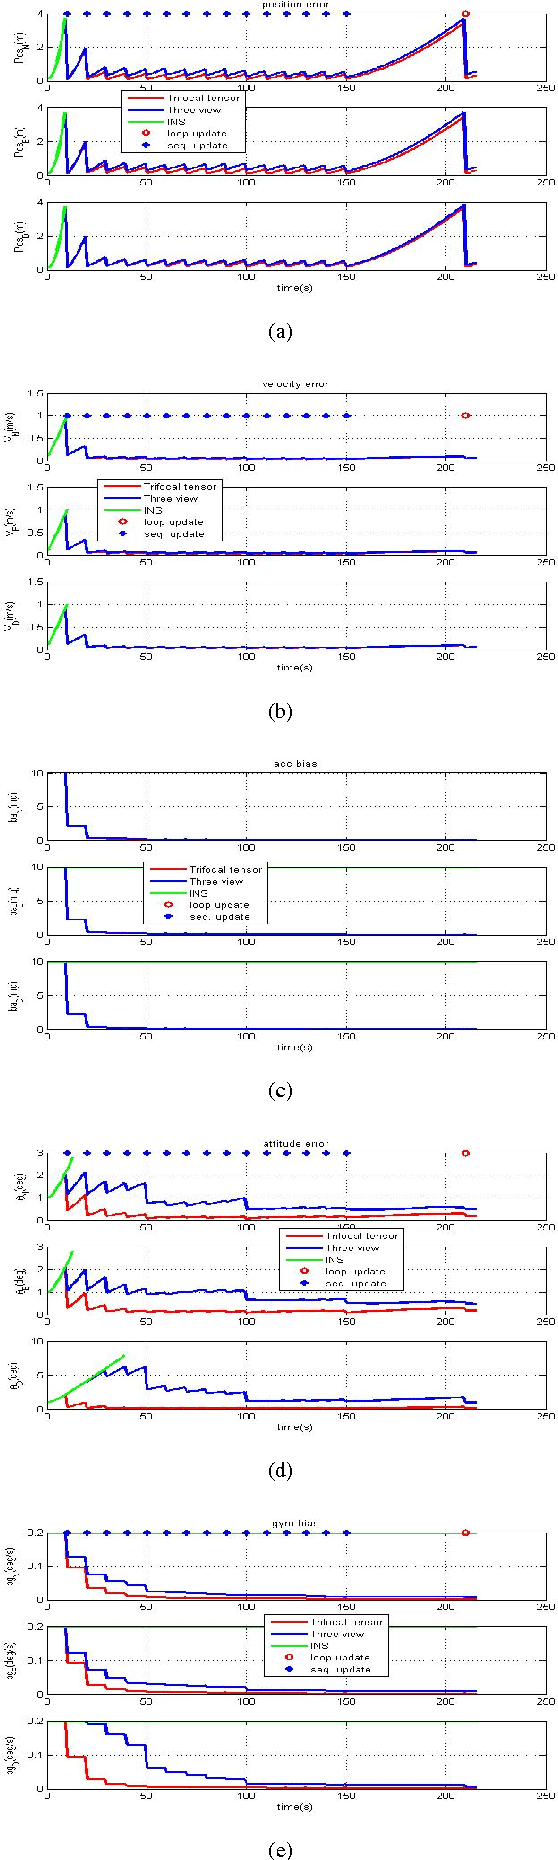 Figure 4 for Vision-aided Localization and Navigation Based on Trifocal Tensor